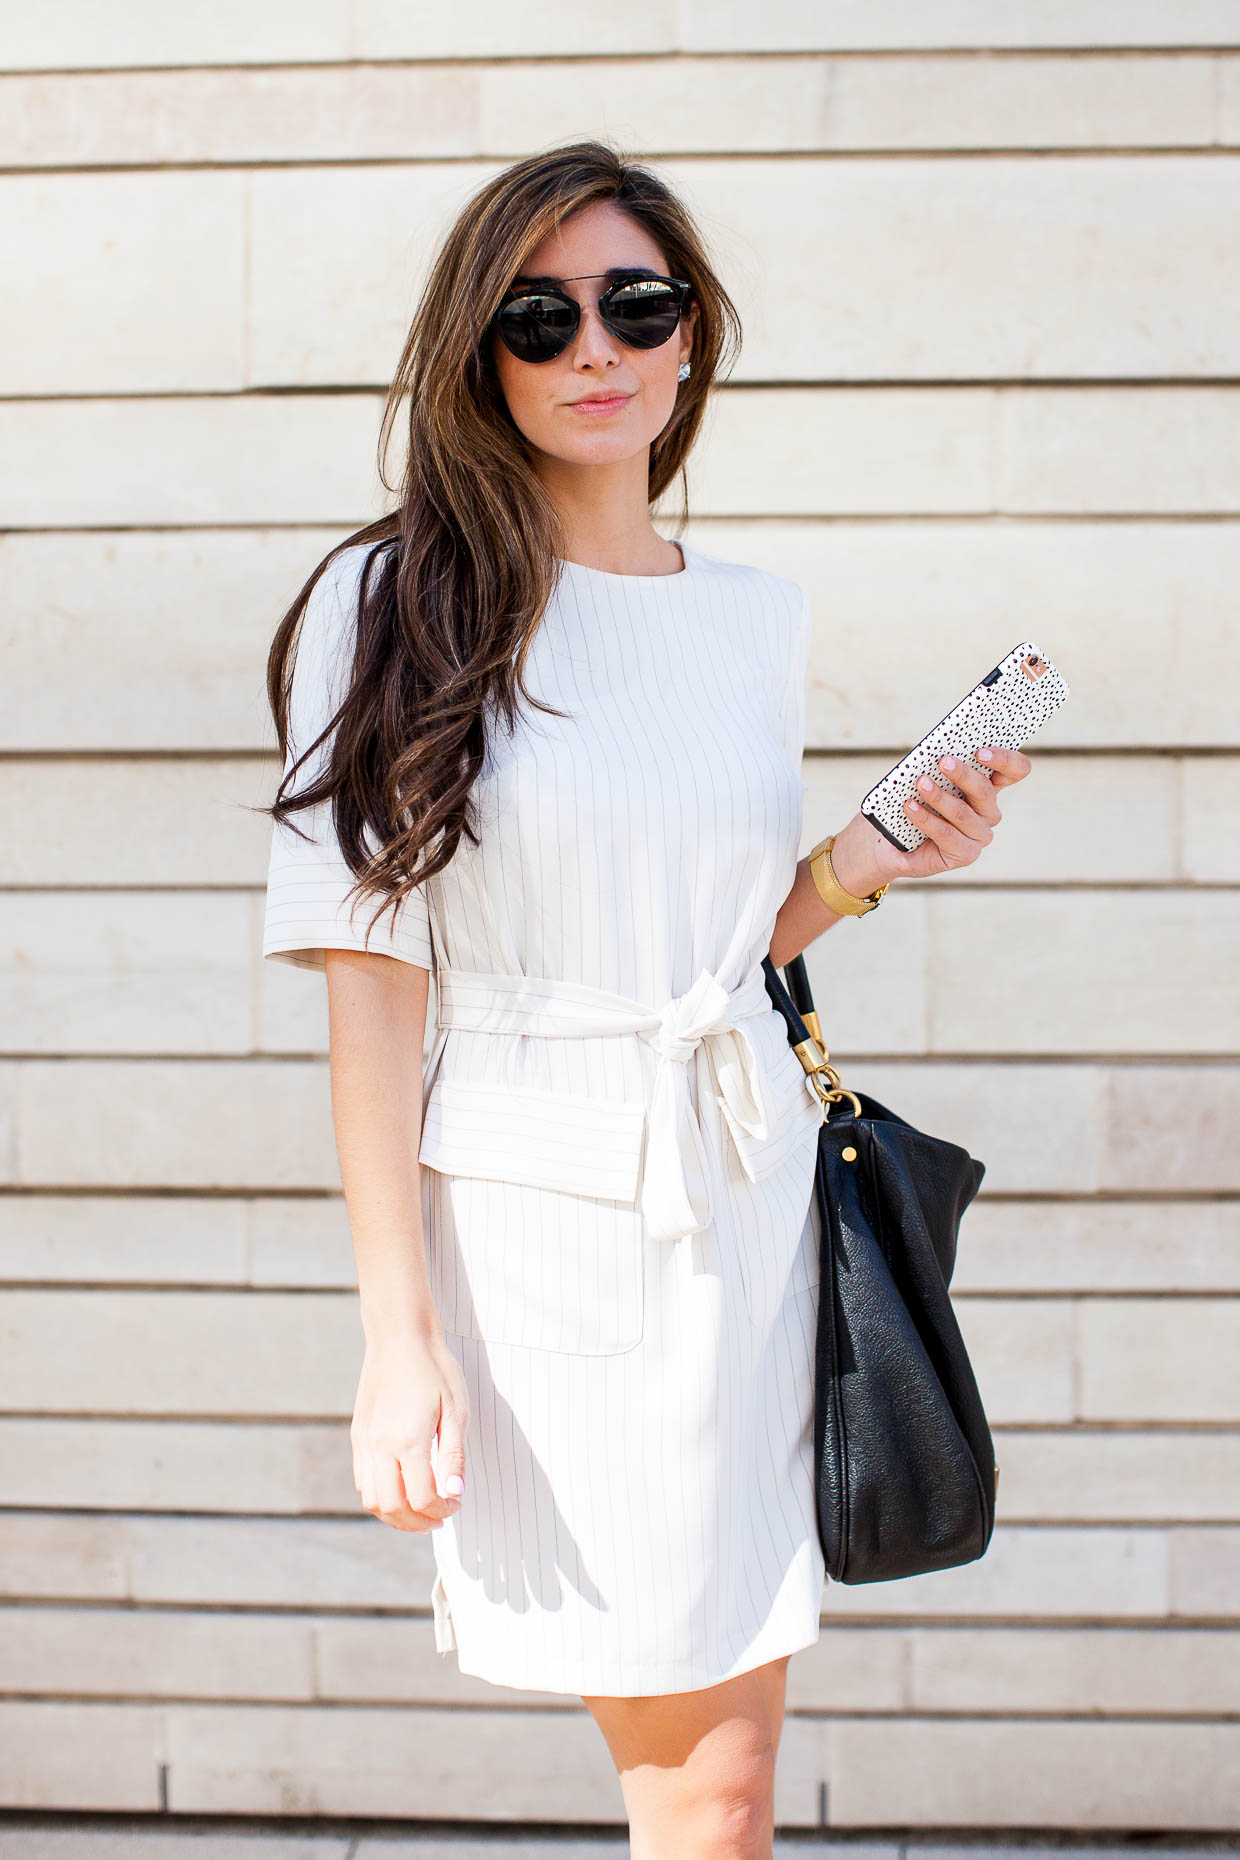 The Darling Detail wearing Dior So Real Sunglasses